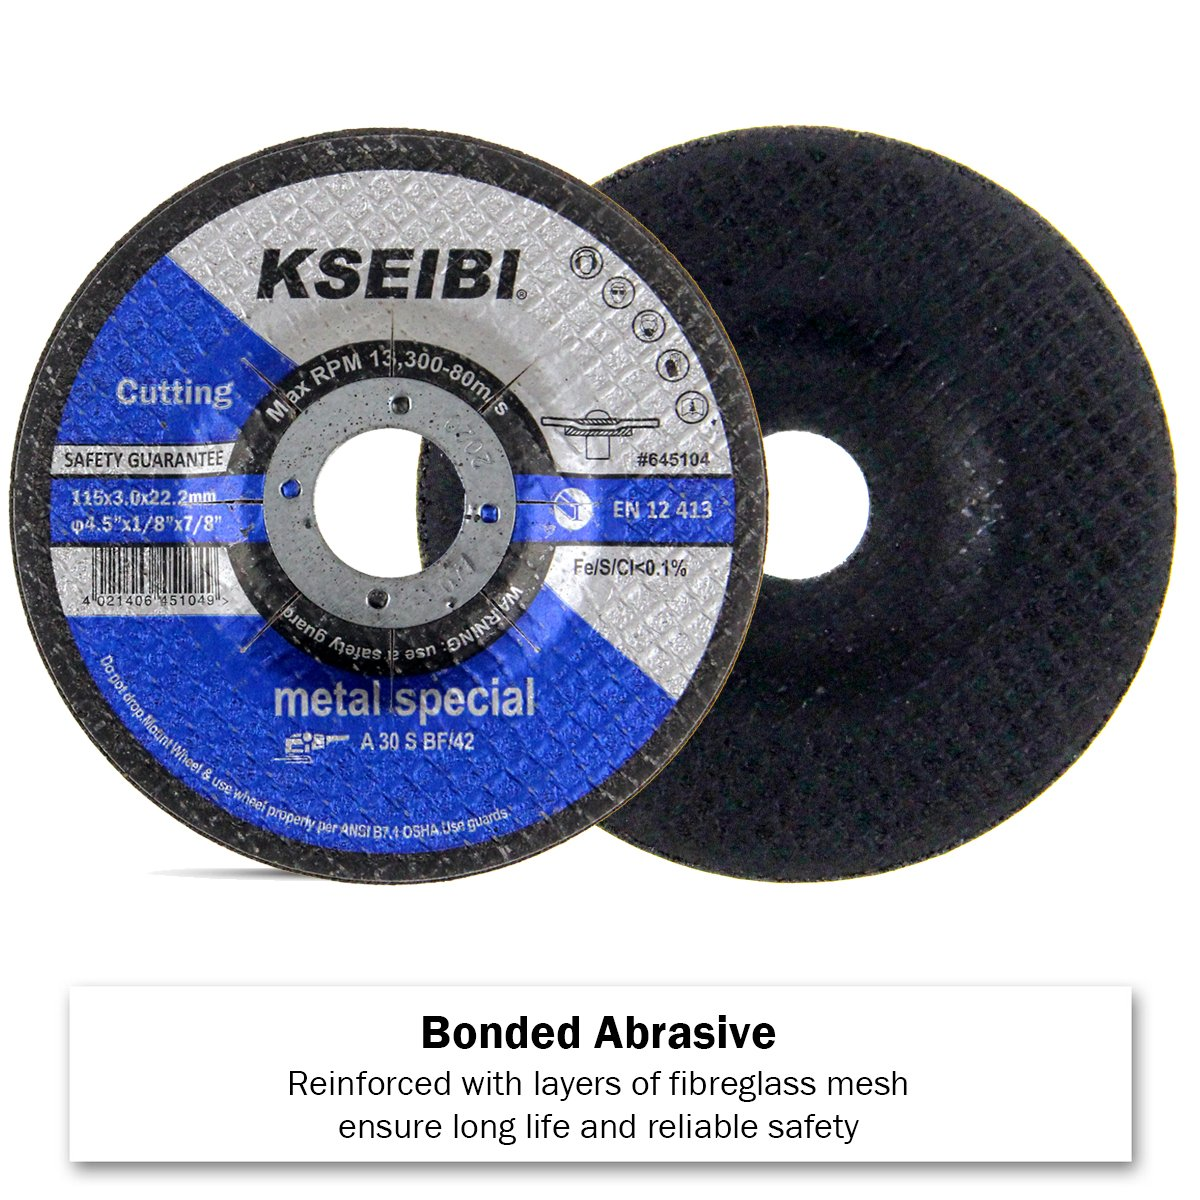 7//8-Inch Arbor 20-Pack KSEIBI 645104 4-1//2-Inch by 1//8-Inch Metal Cutting and Grinding Disc Depressed Center Cut Off Grind Wheel